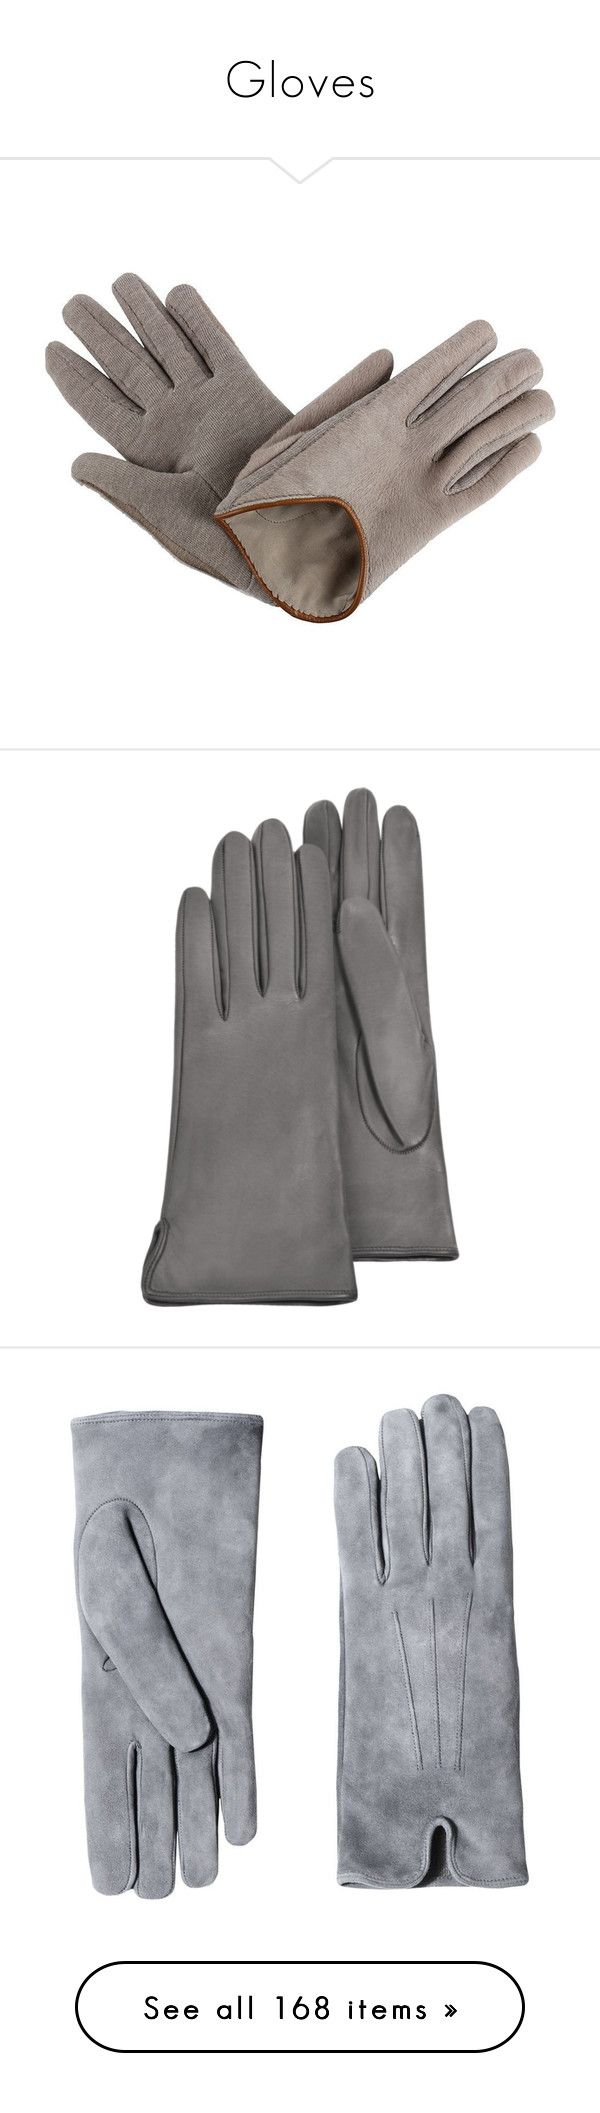 """Gloves"" by vicipokemon ❤ liked on Polyvore featuring accessories, gloves, beige, leather gloves, beige gloves, beige leather gloves, аксессуары, brunello cucinelli, grey gloves and lined gloves"